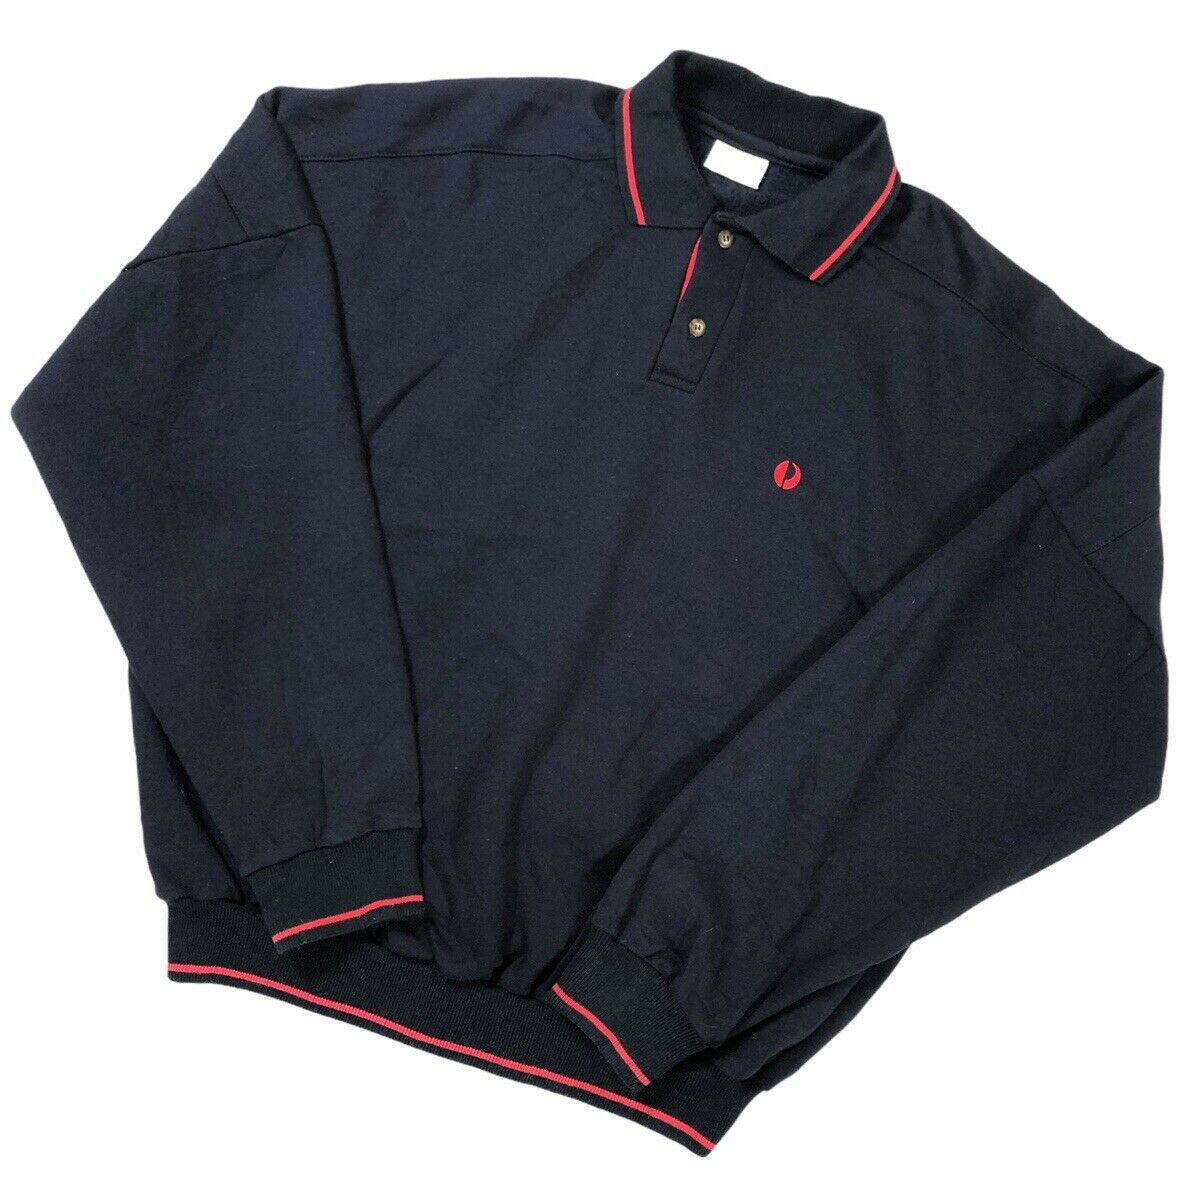 Vintage 90s Retro Red Navy Polo Sweatshirt Collared Jumper Pullover Mens Womens